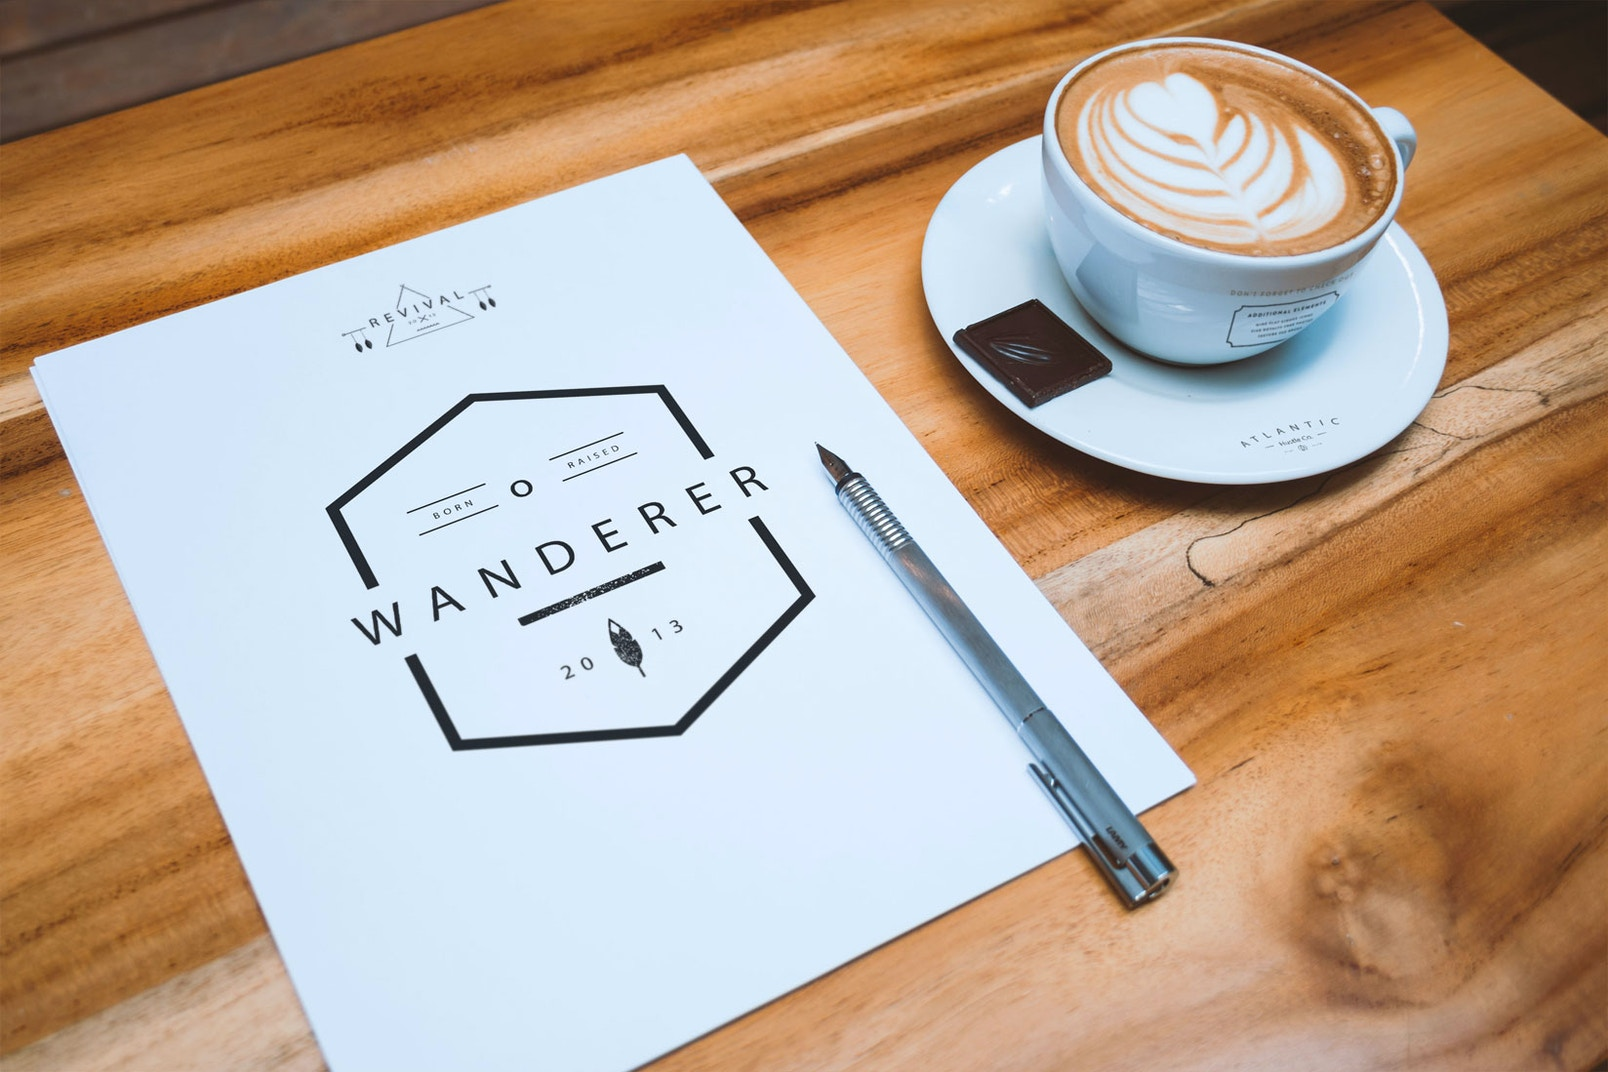 A4 Letterhead and Coffee Cup Mockup